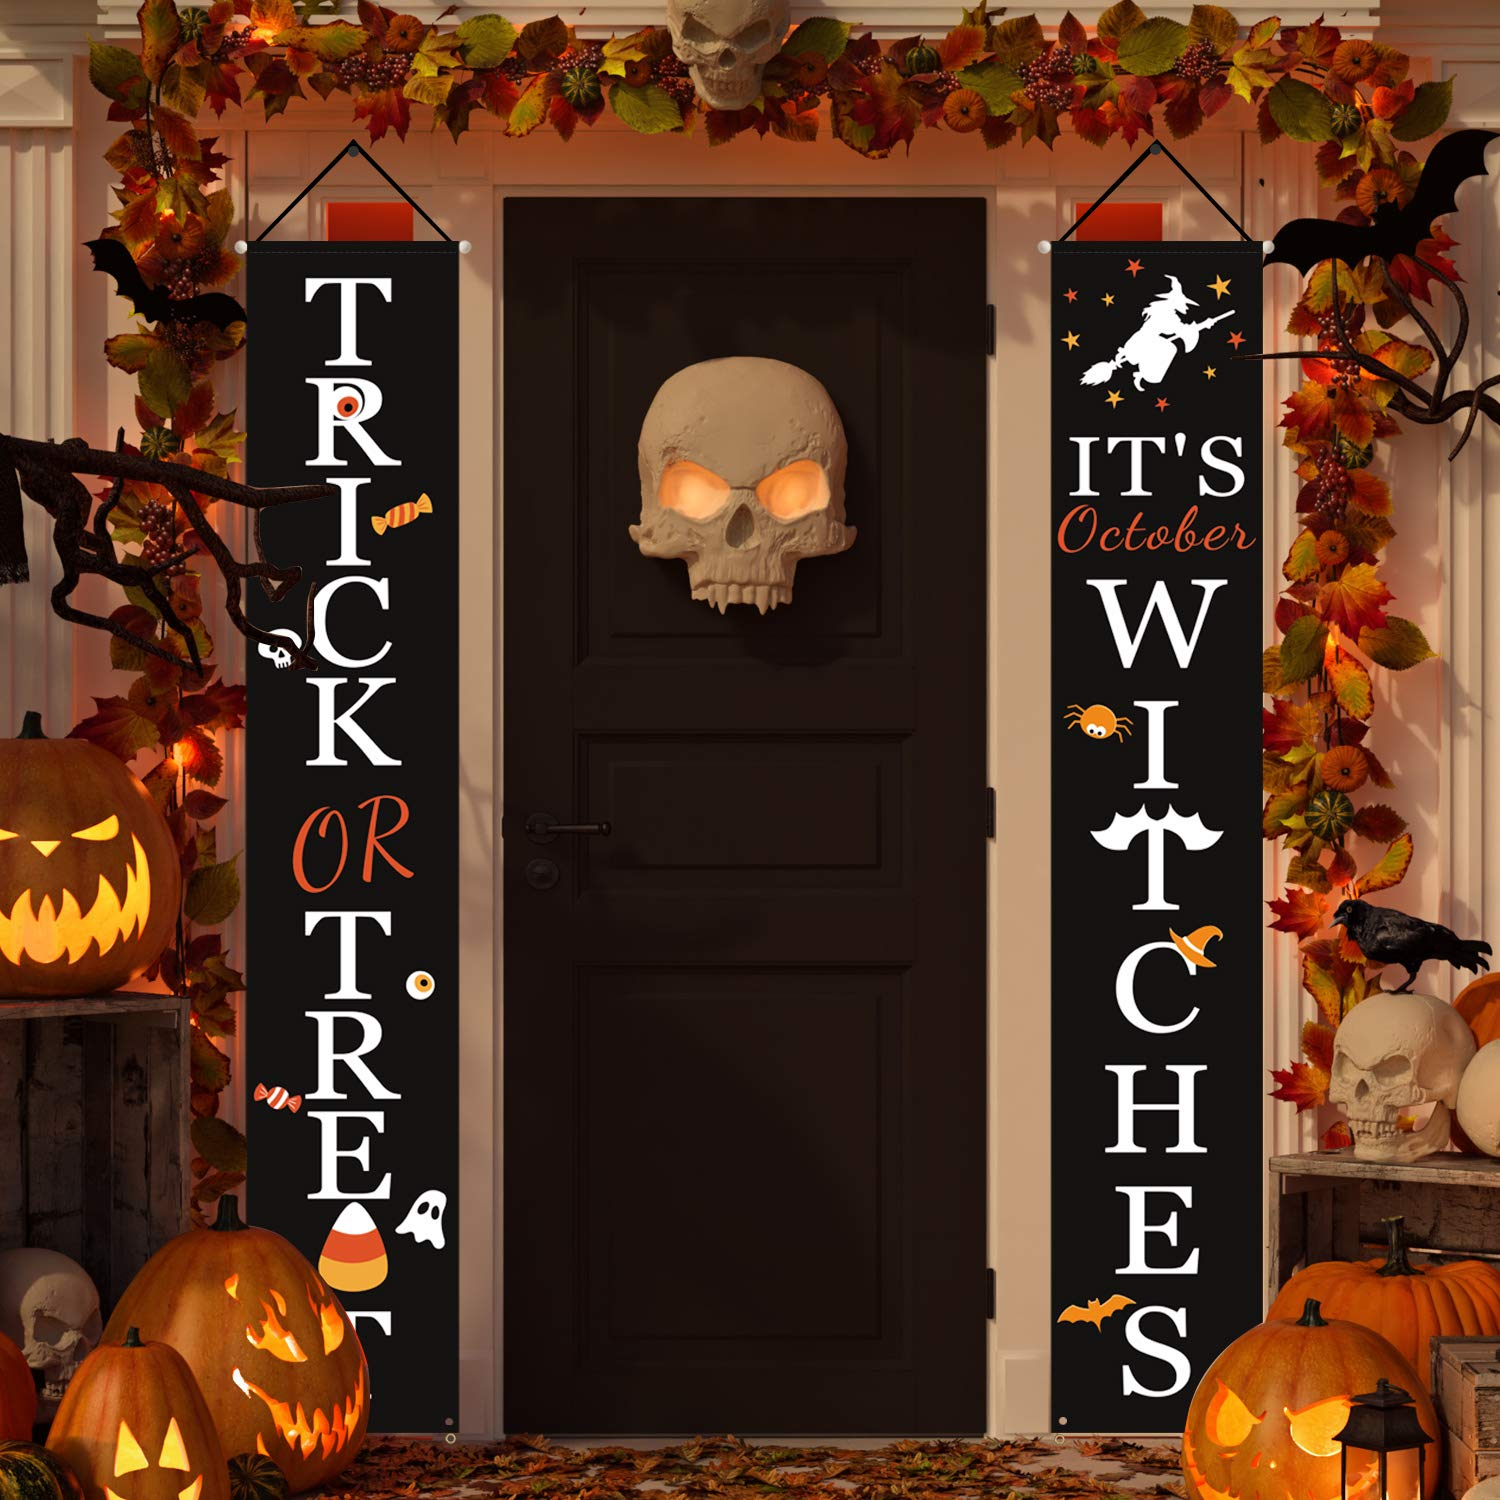 Dazonge Halloween Decorations Outdoor | Trick or Treat & It's October Witches Halloween Signs for Front Door or Indoor Home Decor | Porch Decorations | Halloween Welcome Signs by Dazonge